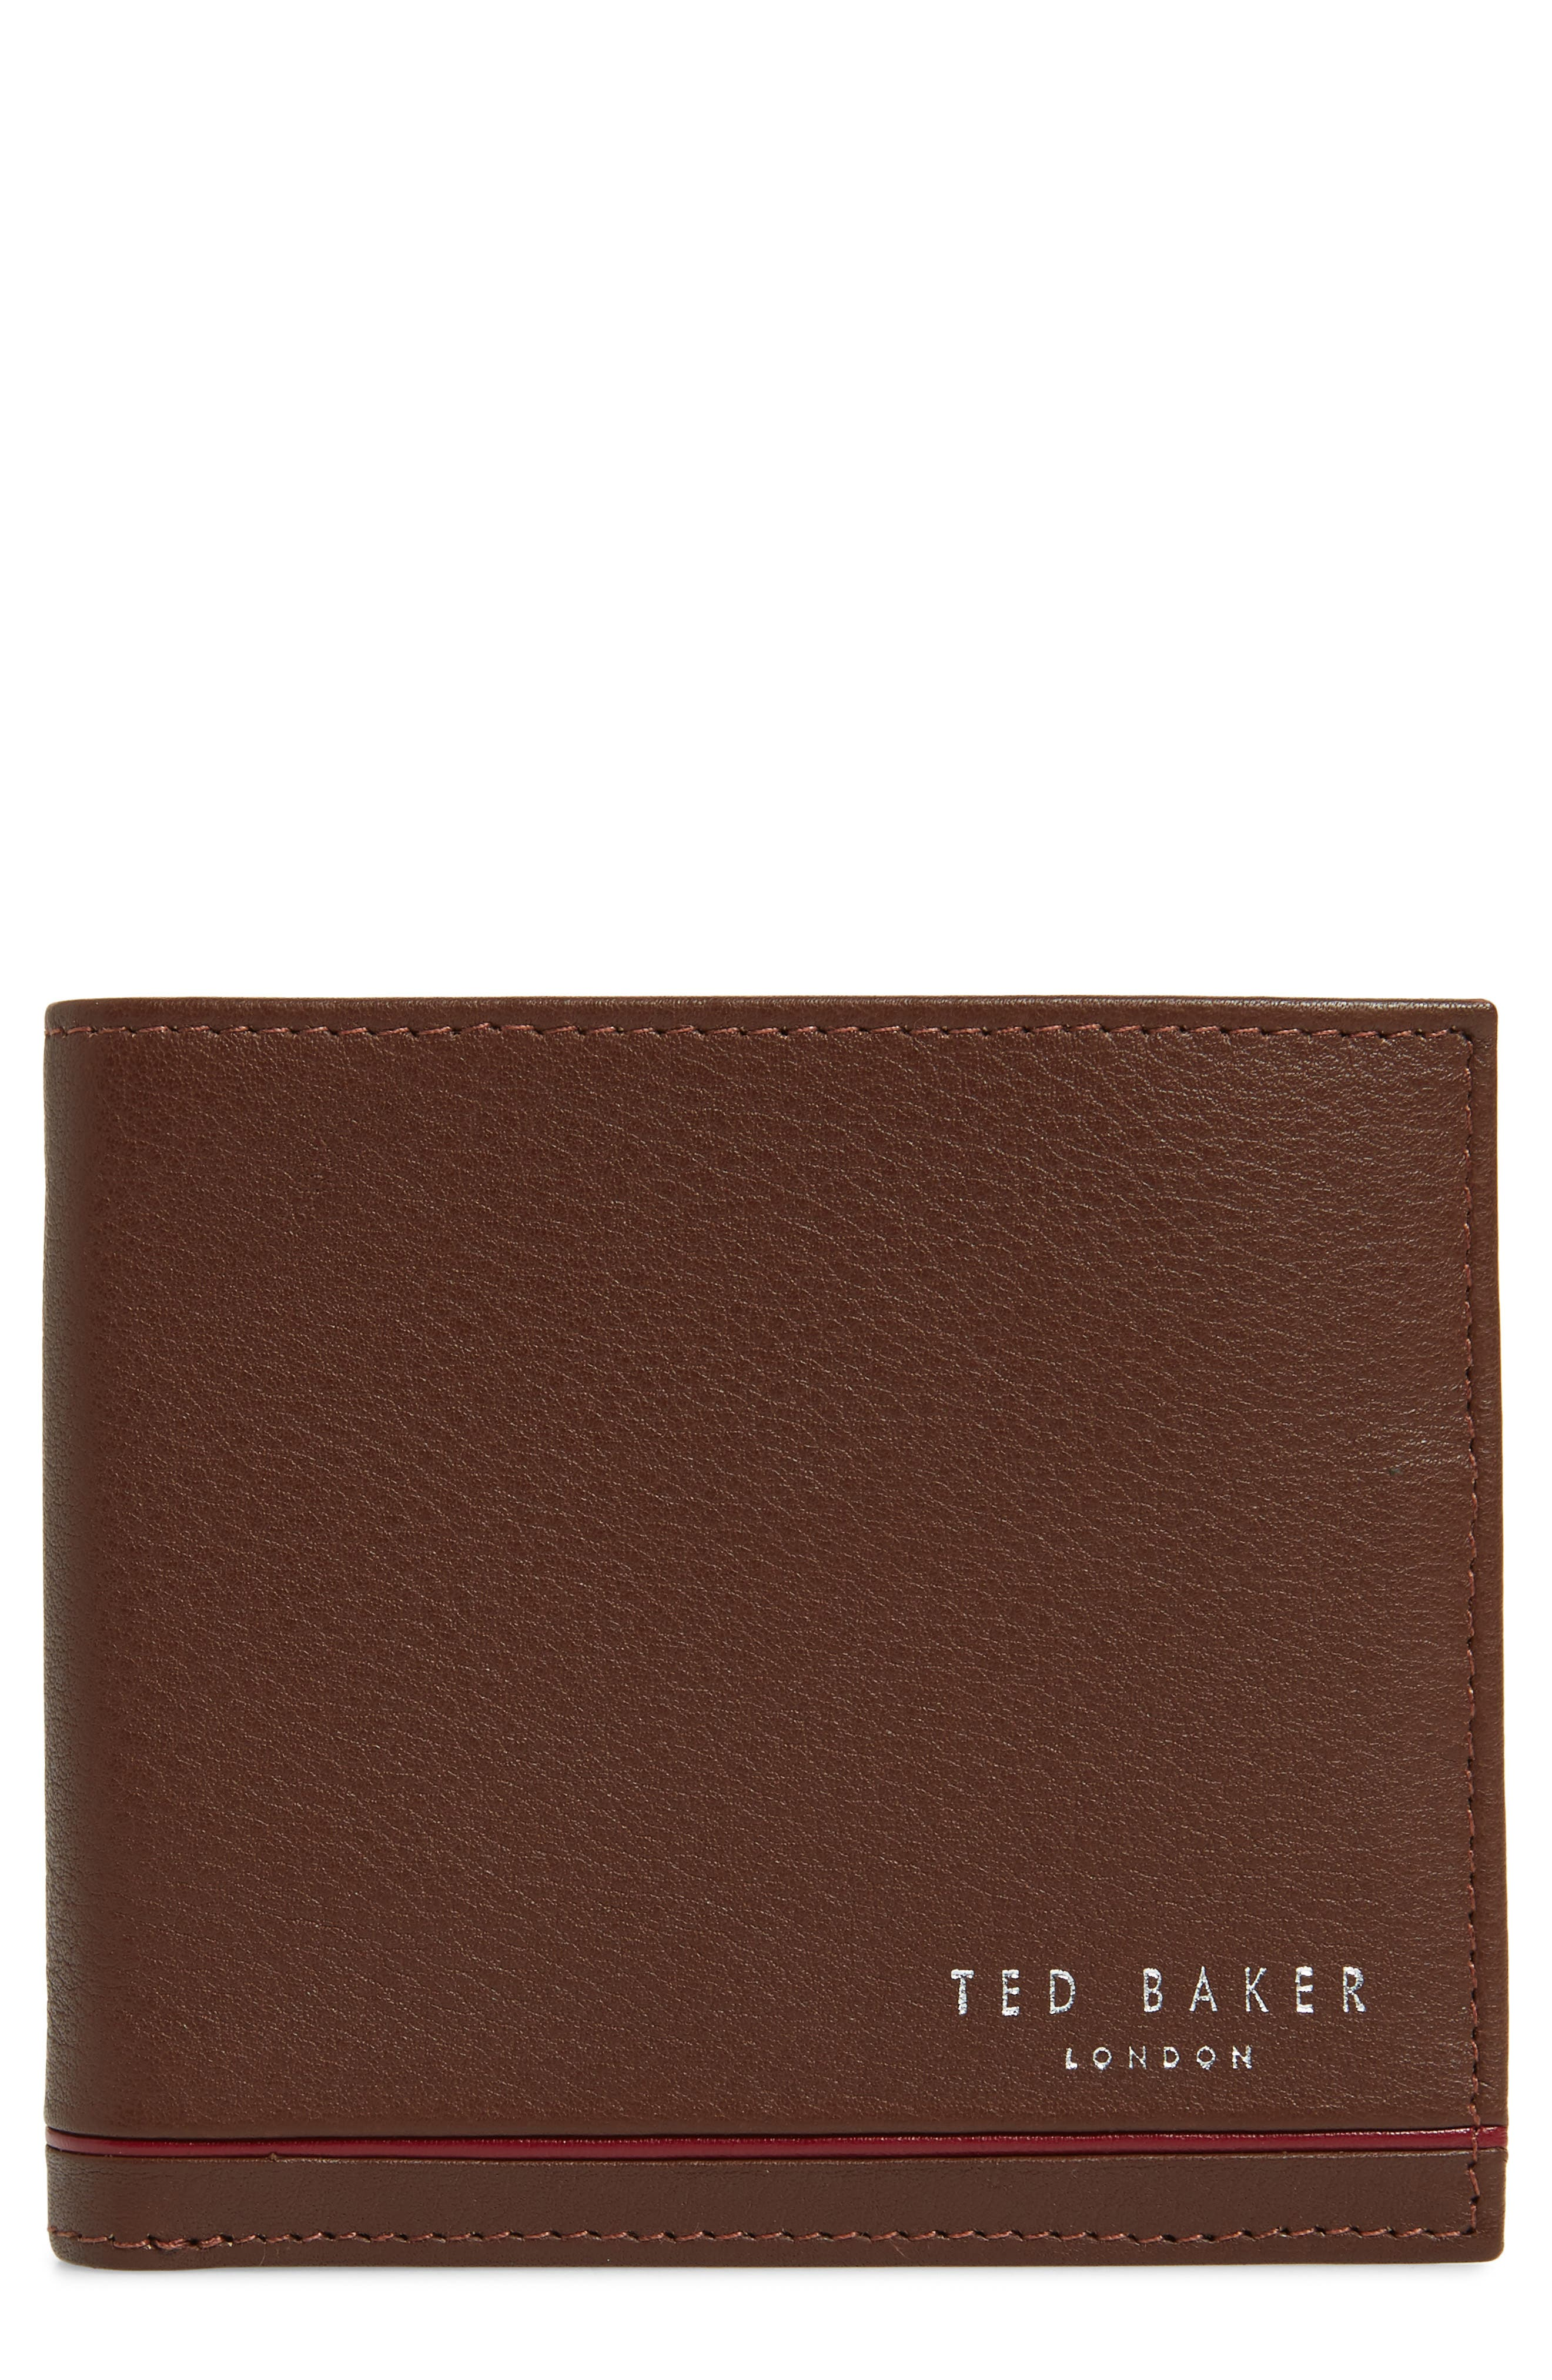 Dooree Leather Wallet,                             Main thumbnail 1, color,                             217